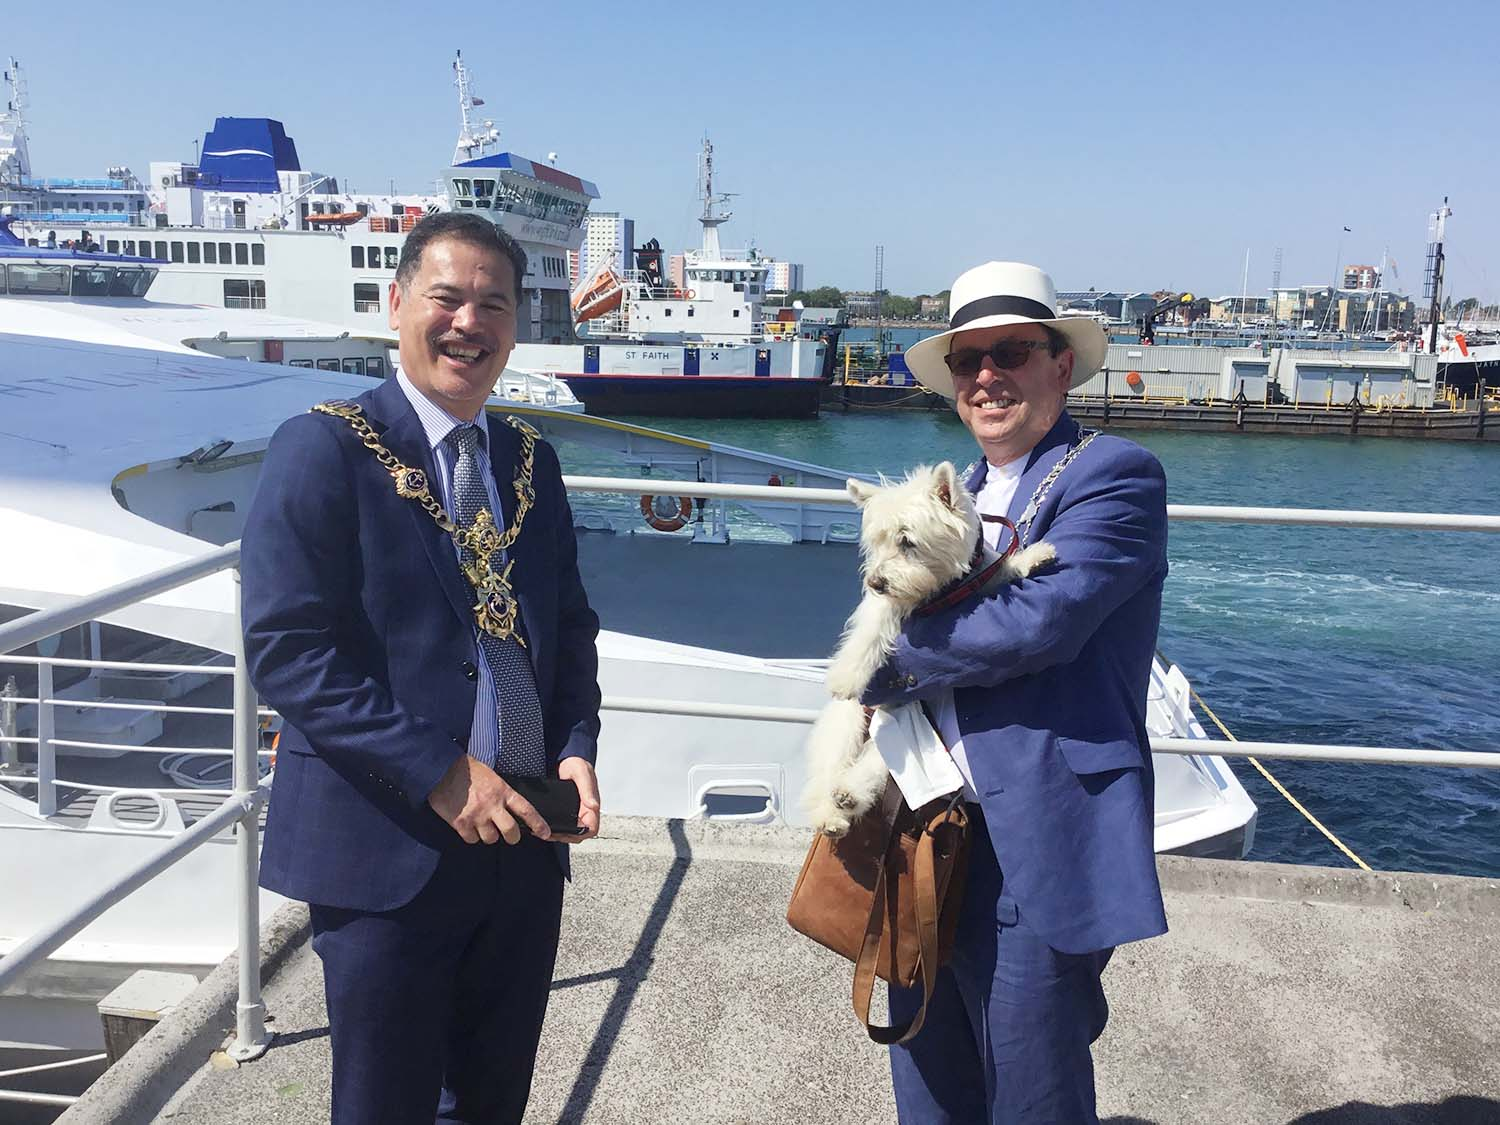 Michael Lilley Mayor of Ryde with Mayor of Portsmouth in Portsmouth Haarbour celebrating FastCat back in service after first Covid Lockdown 2020